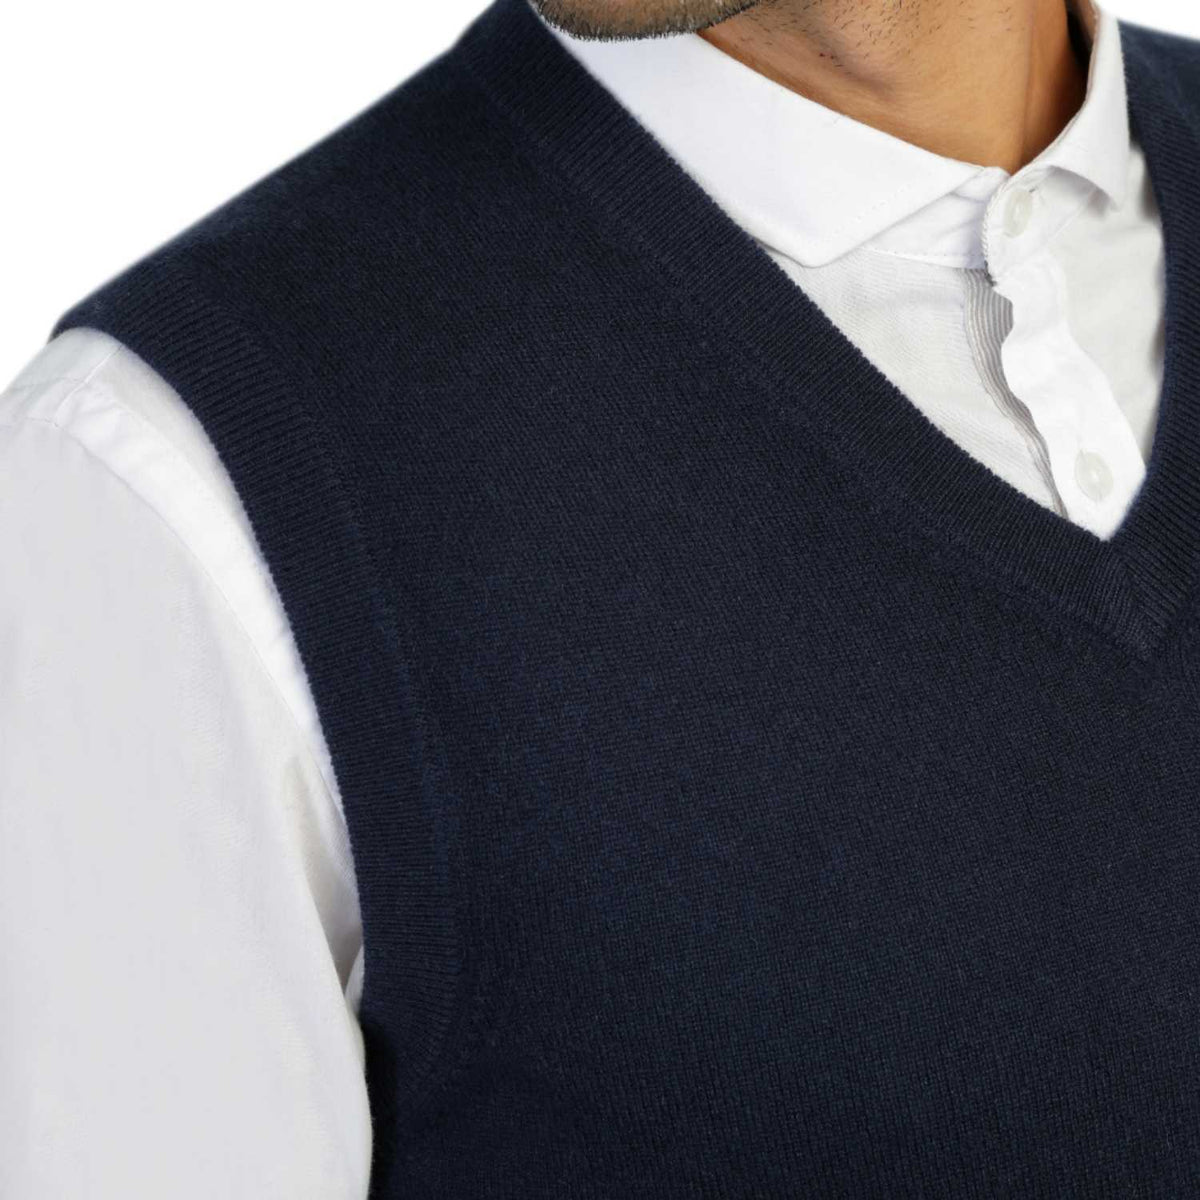 Mens Navy Blue Cashmere Sleeveless Vest Sweater | Close up | Shop at The Cashmere Choice | London